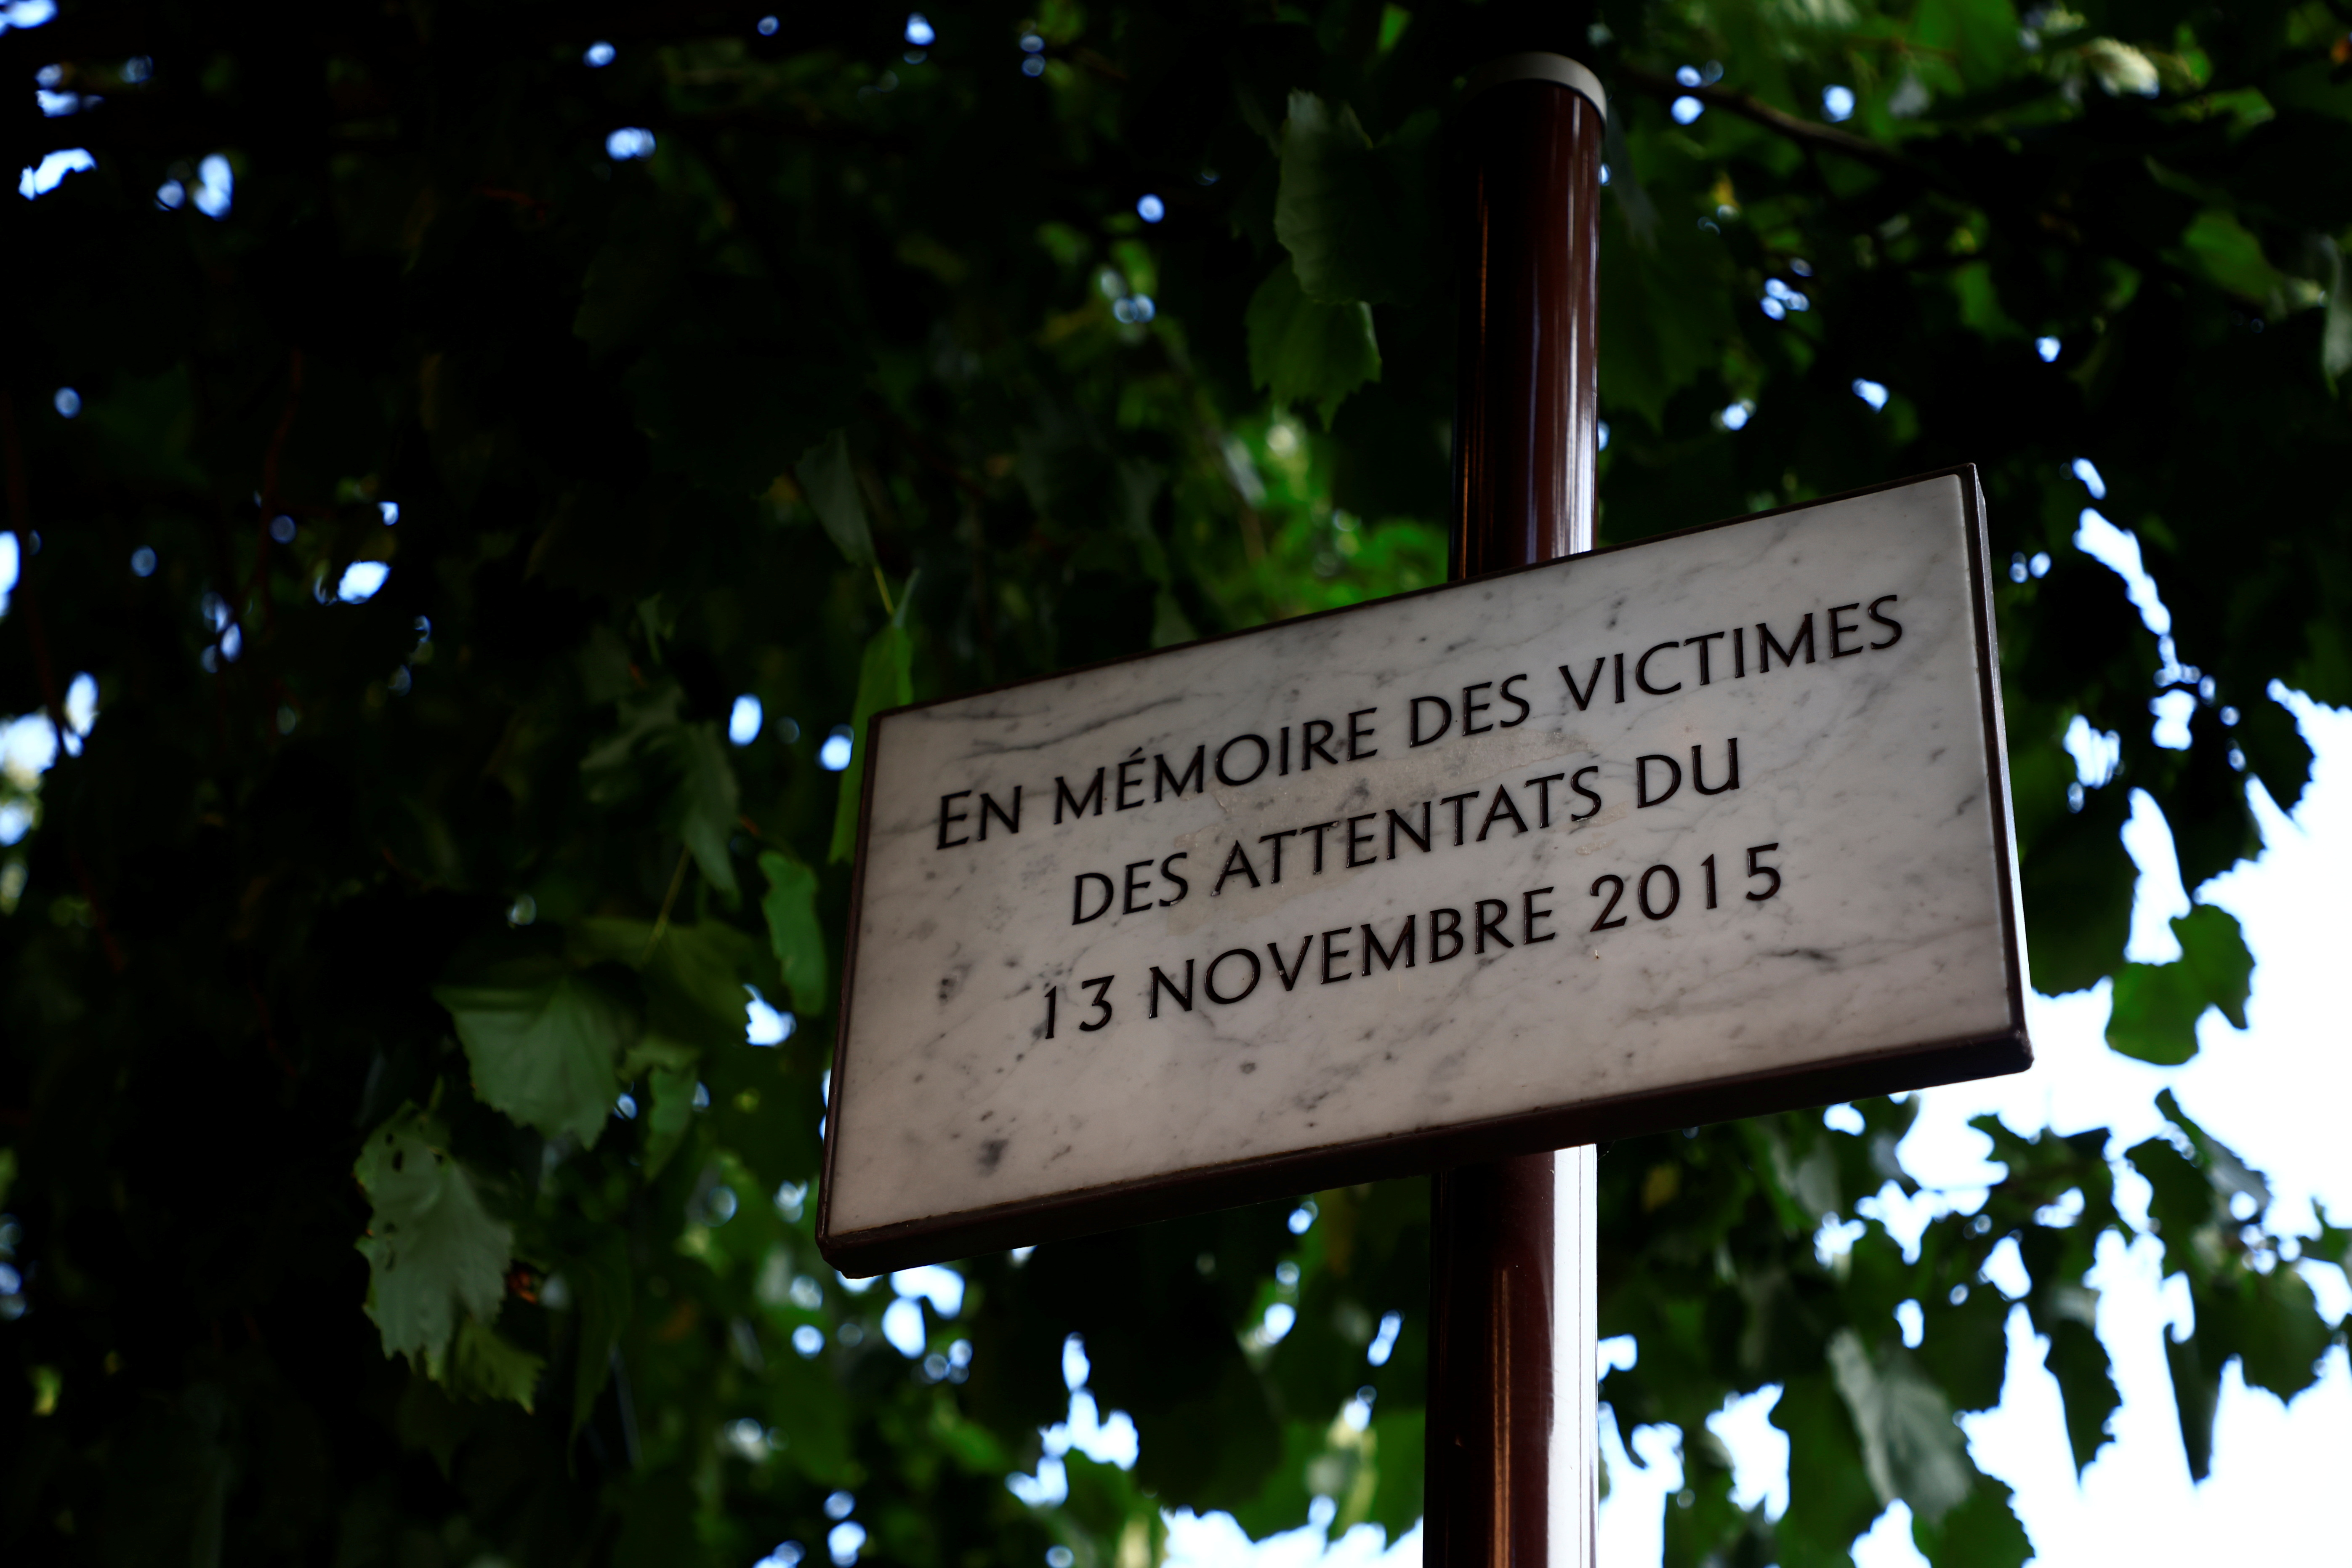 A commemorative plaque for the victims of Paris' November 2015 attacks is seen near the bar and restaurant previously named Comptoir Voltaire in Paris, France, September 1, 2021. Twenty defendants will stand the trial of Paris' November 2015 attacks from September 8, 2021 to May 25, 2022 at Paris courthouse on the Ile de la Cite, with nearly 1,800 civil parties, more than 300 lawyers, hundreds of journalists and large-scale security challenges. Picture taken September 1, 2021. REUTERS/Sarah Meyssonnier